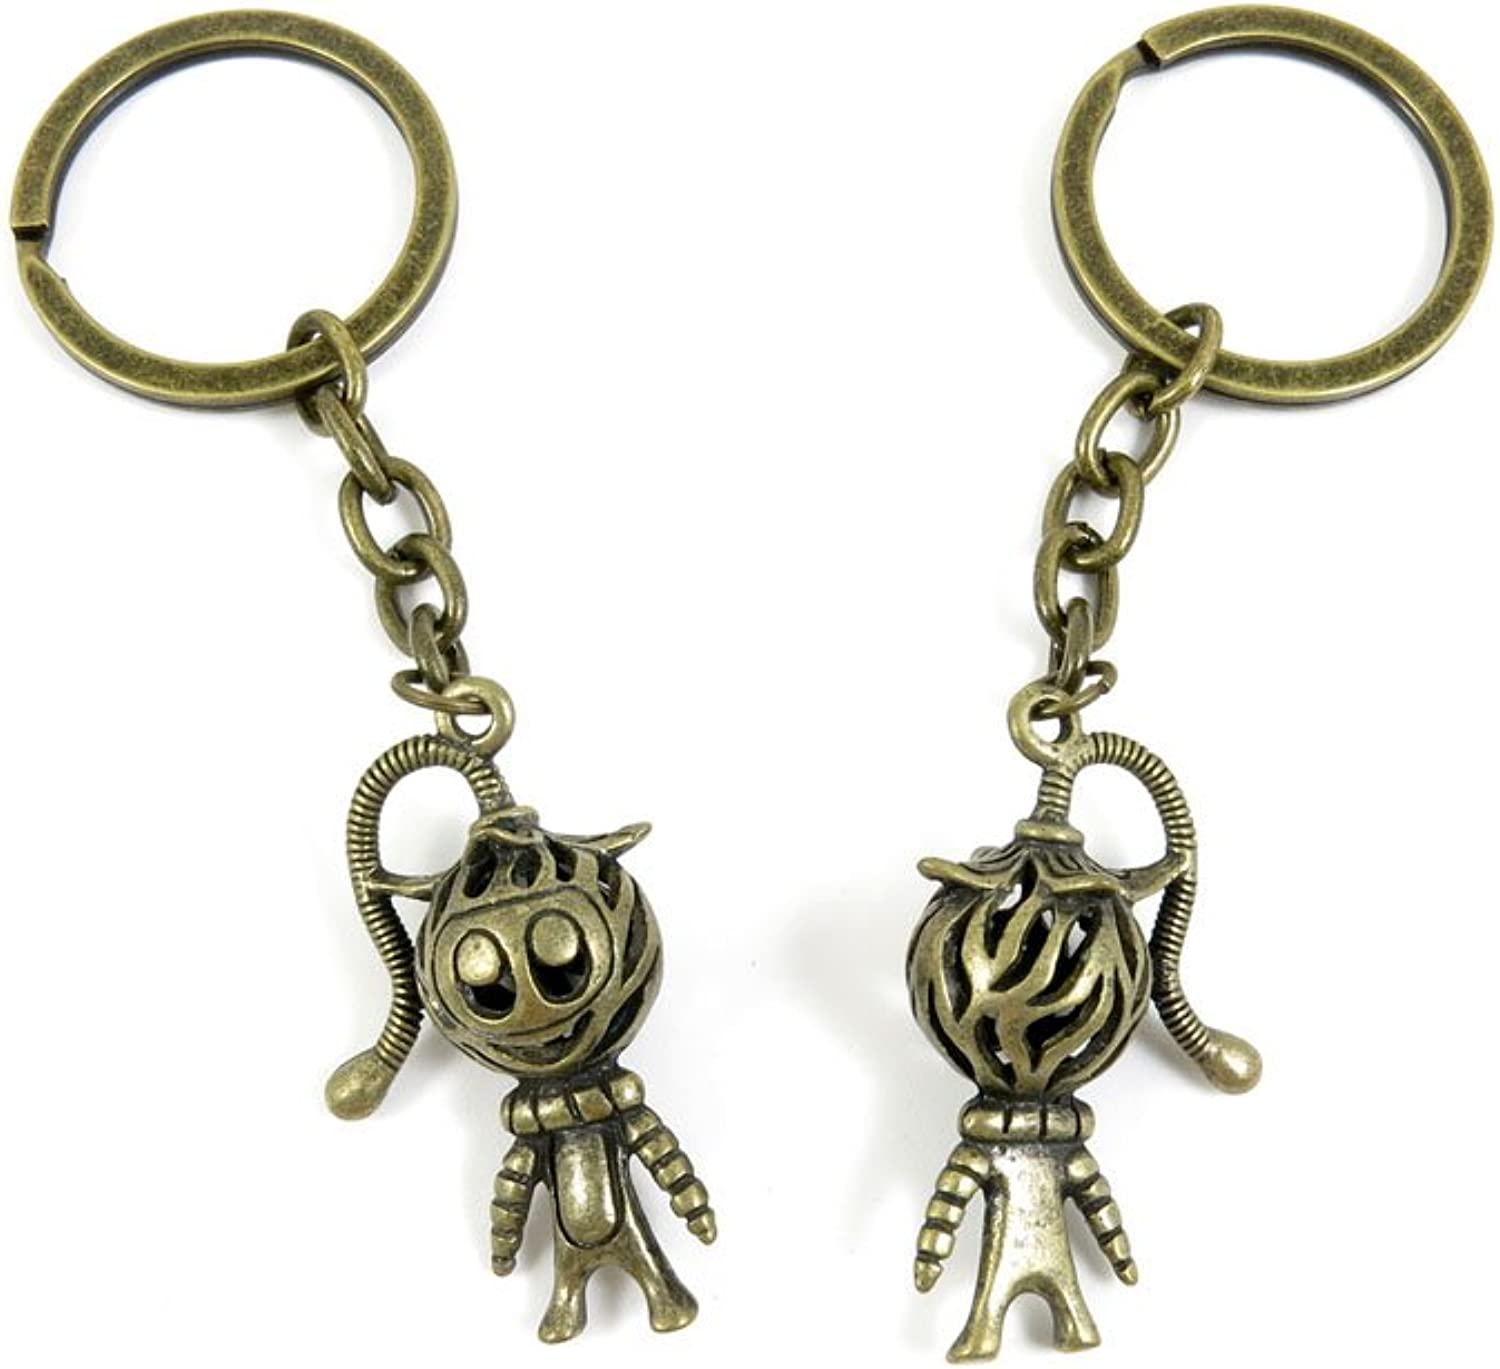 100 PCS Keyrings Keychains Key Ring Chains Tags Jewelry Findings Clasps Buckles Supplies D1WH8 Hollow Clown